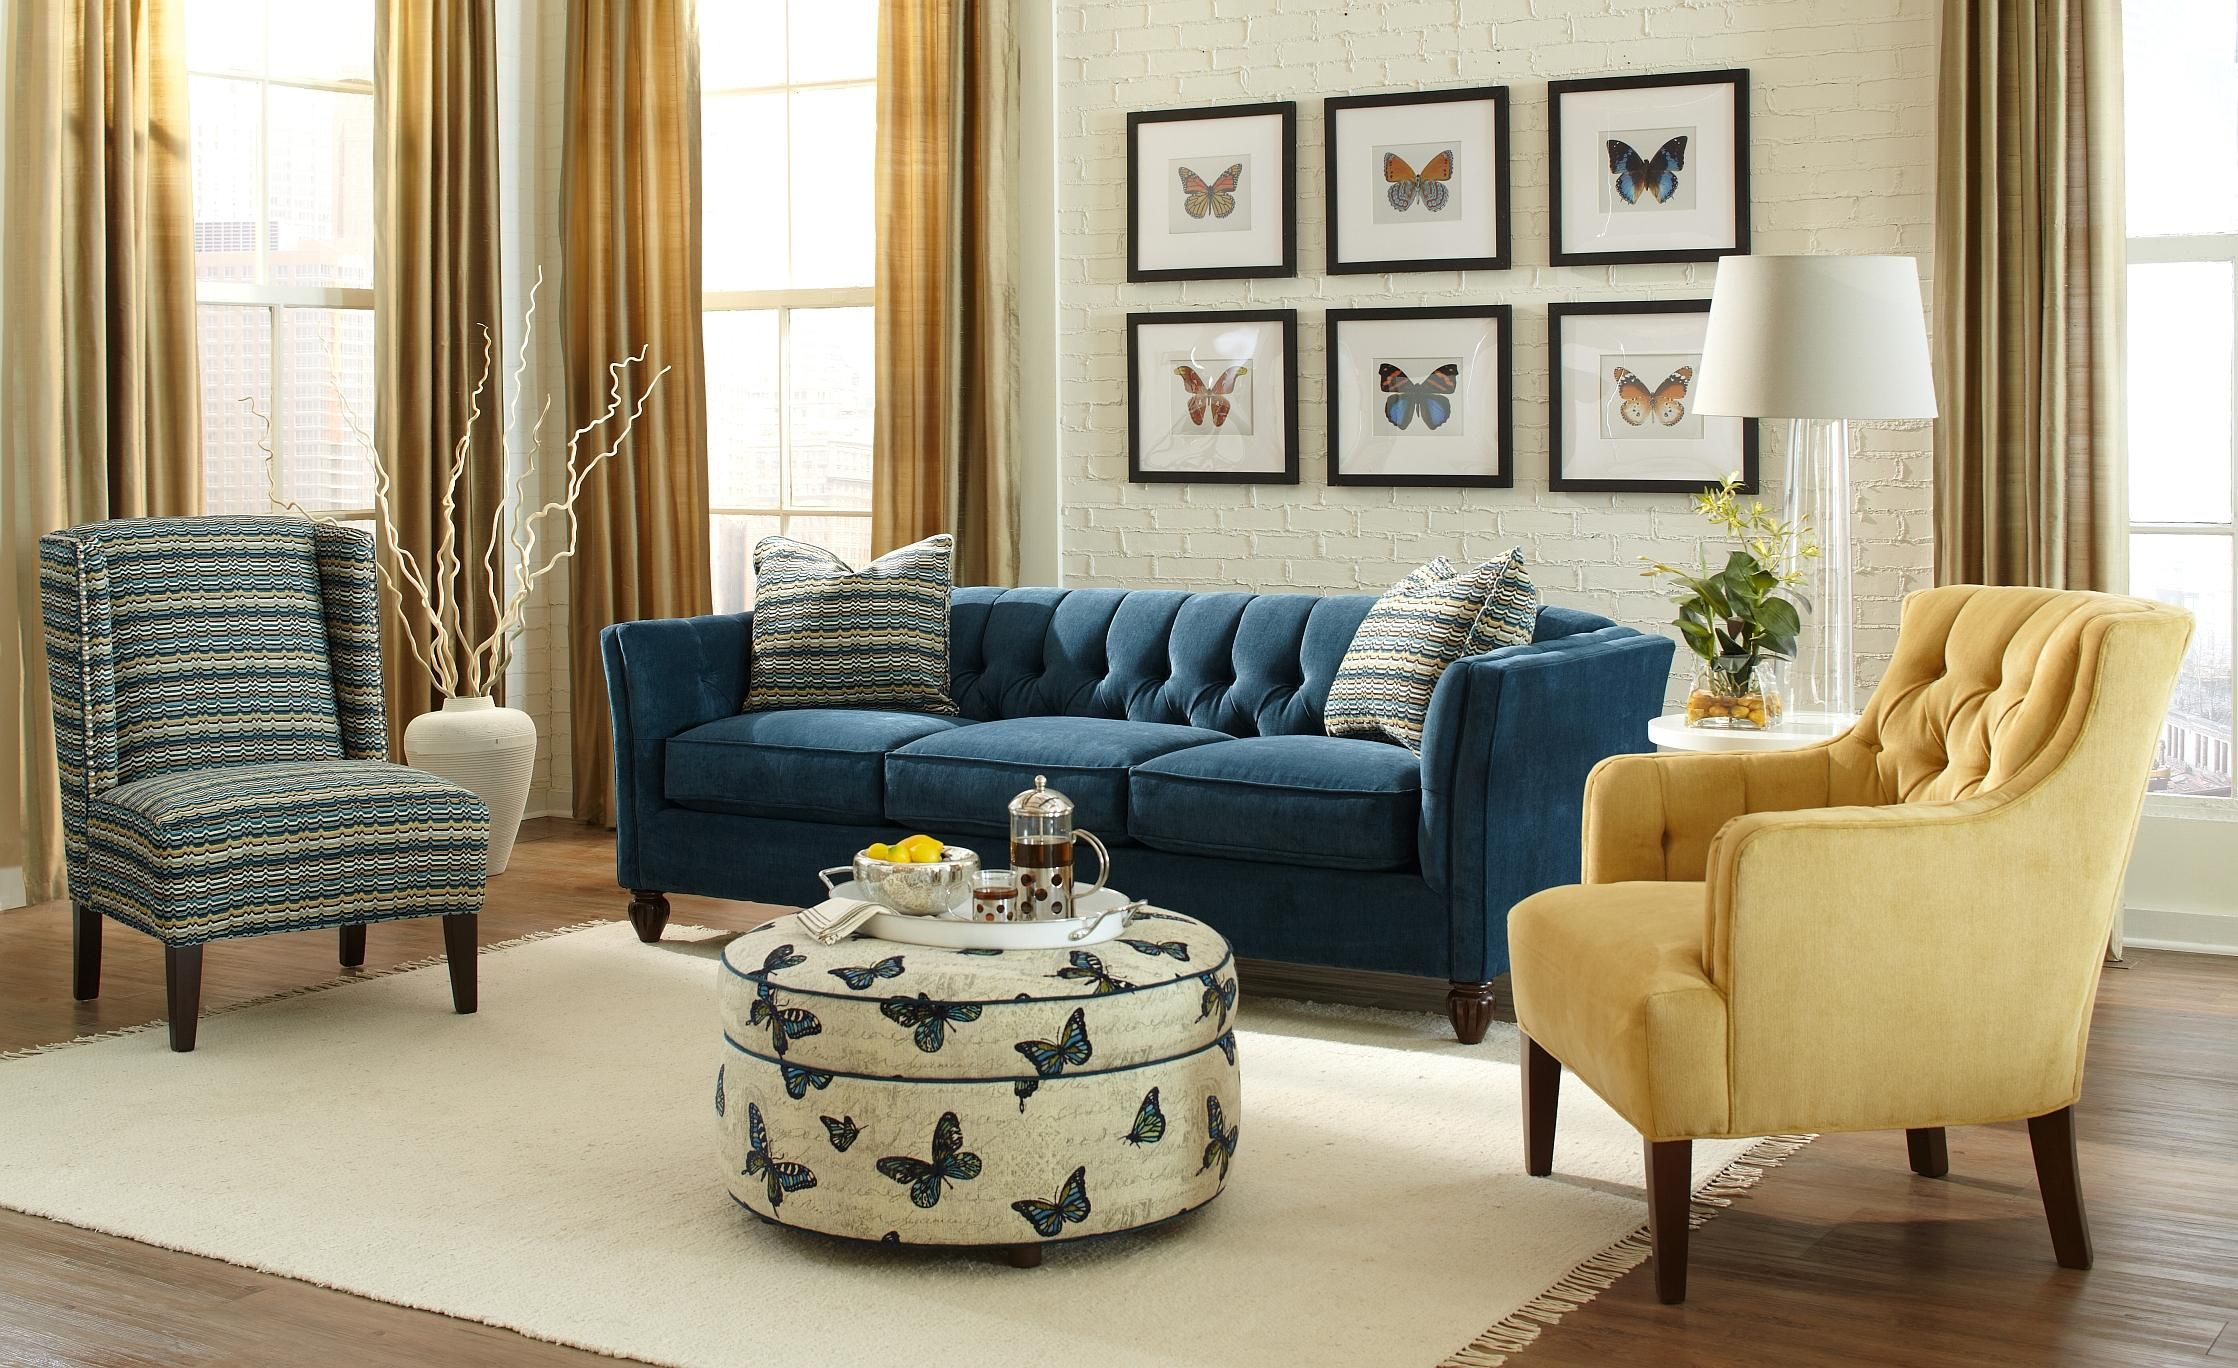 Furniture navy blue velvet tufted chesterfield couch with